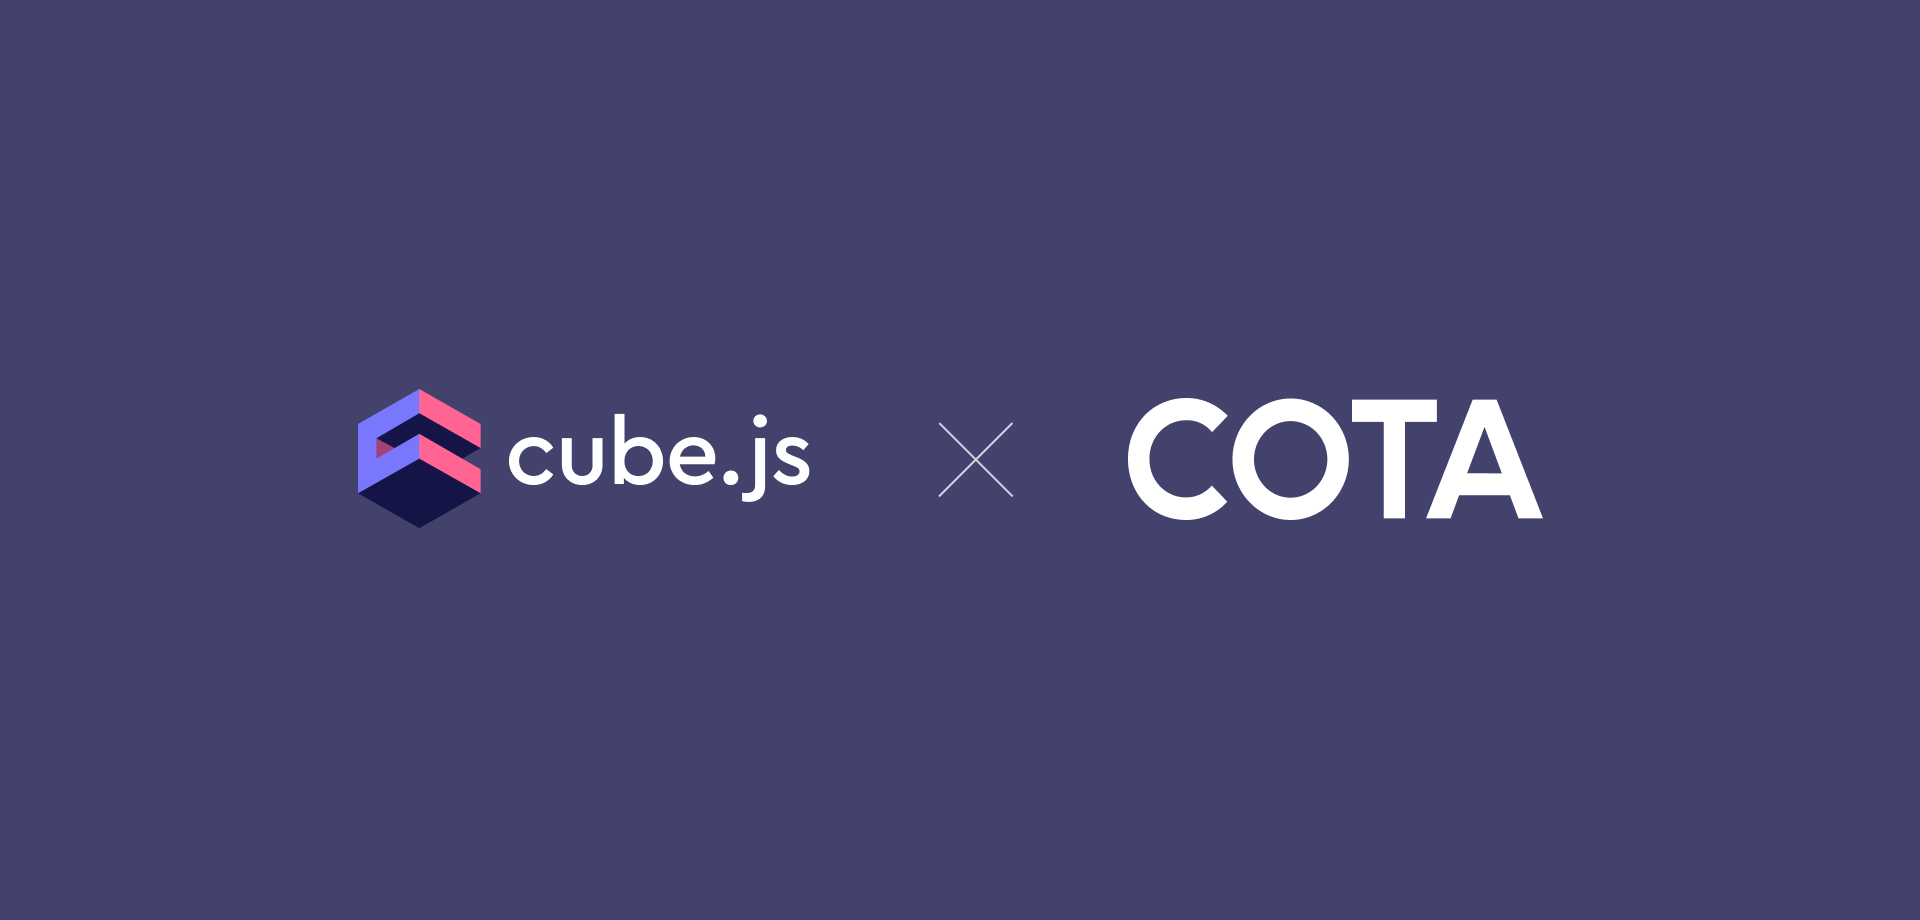 How COTA uses Cube.js to aid the development of new drugs and therapies